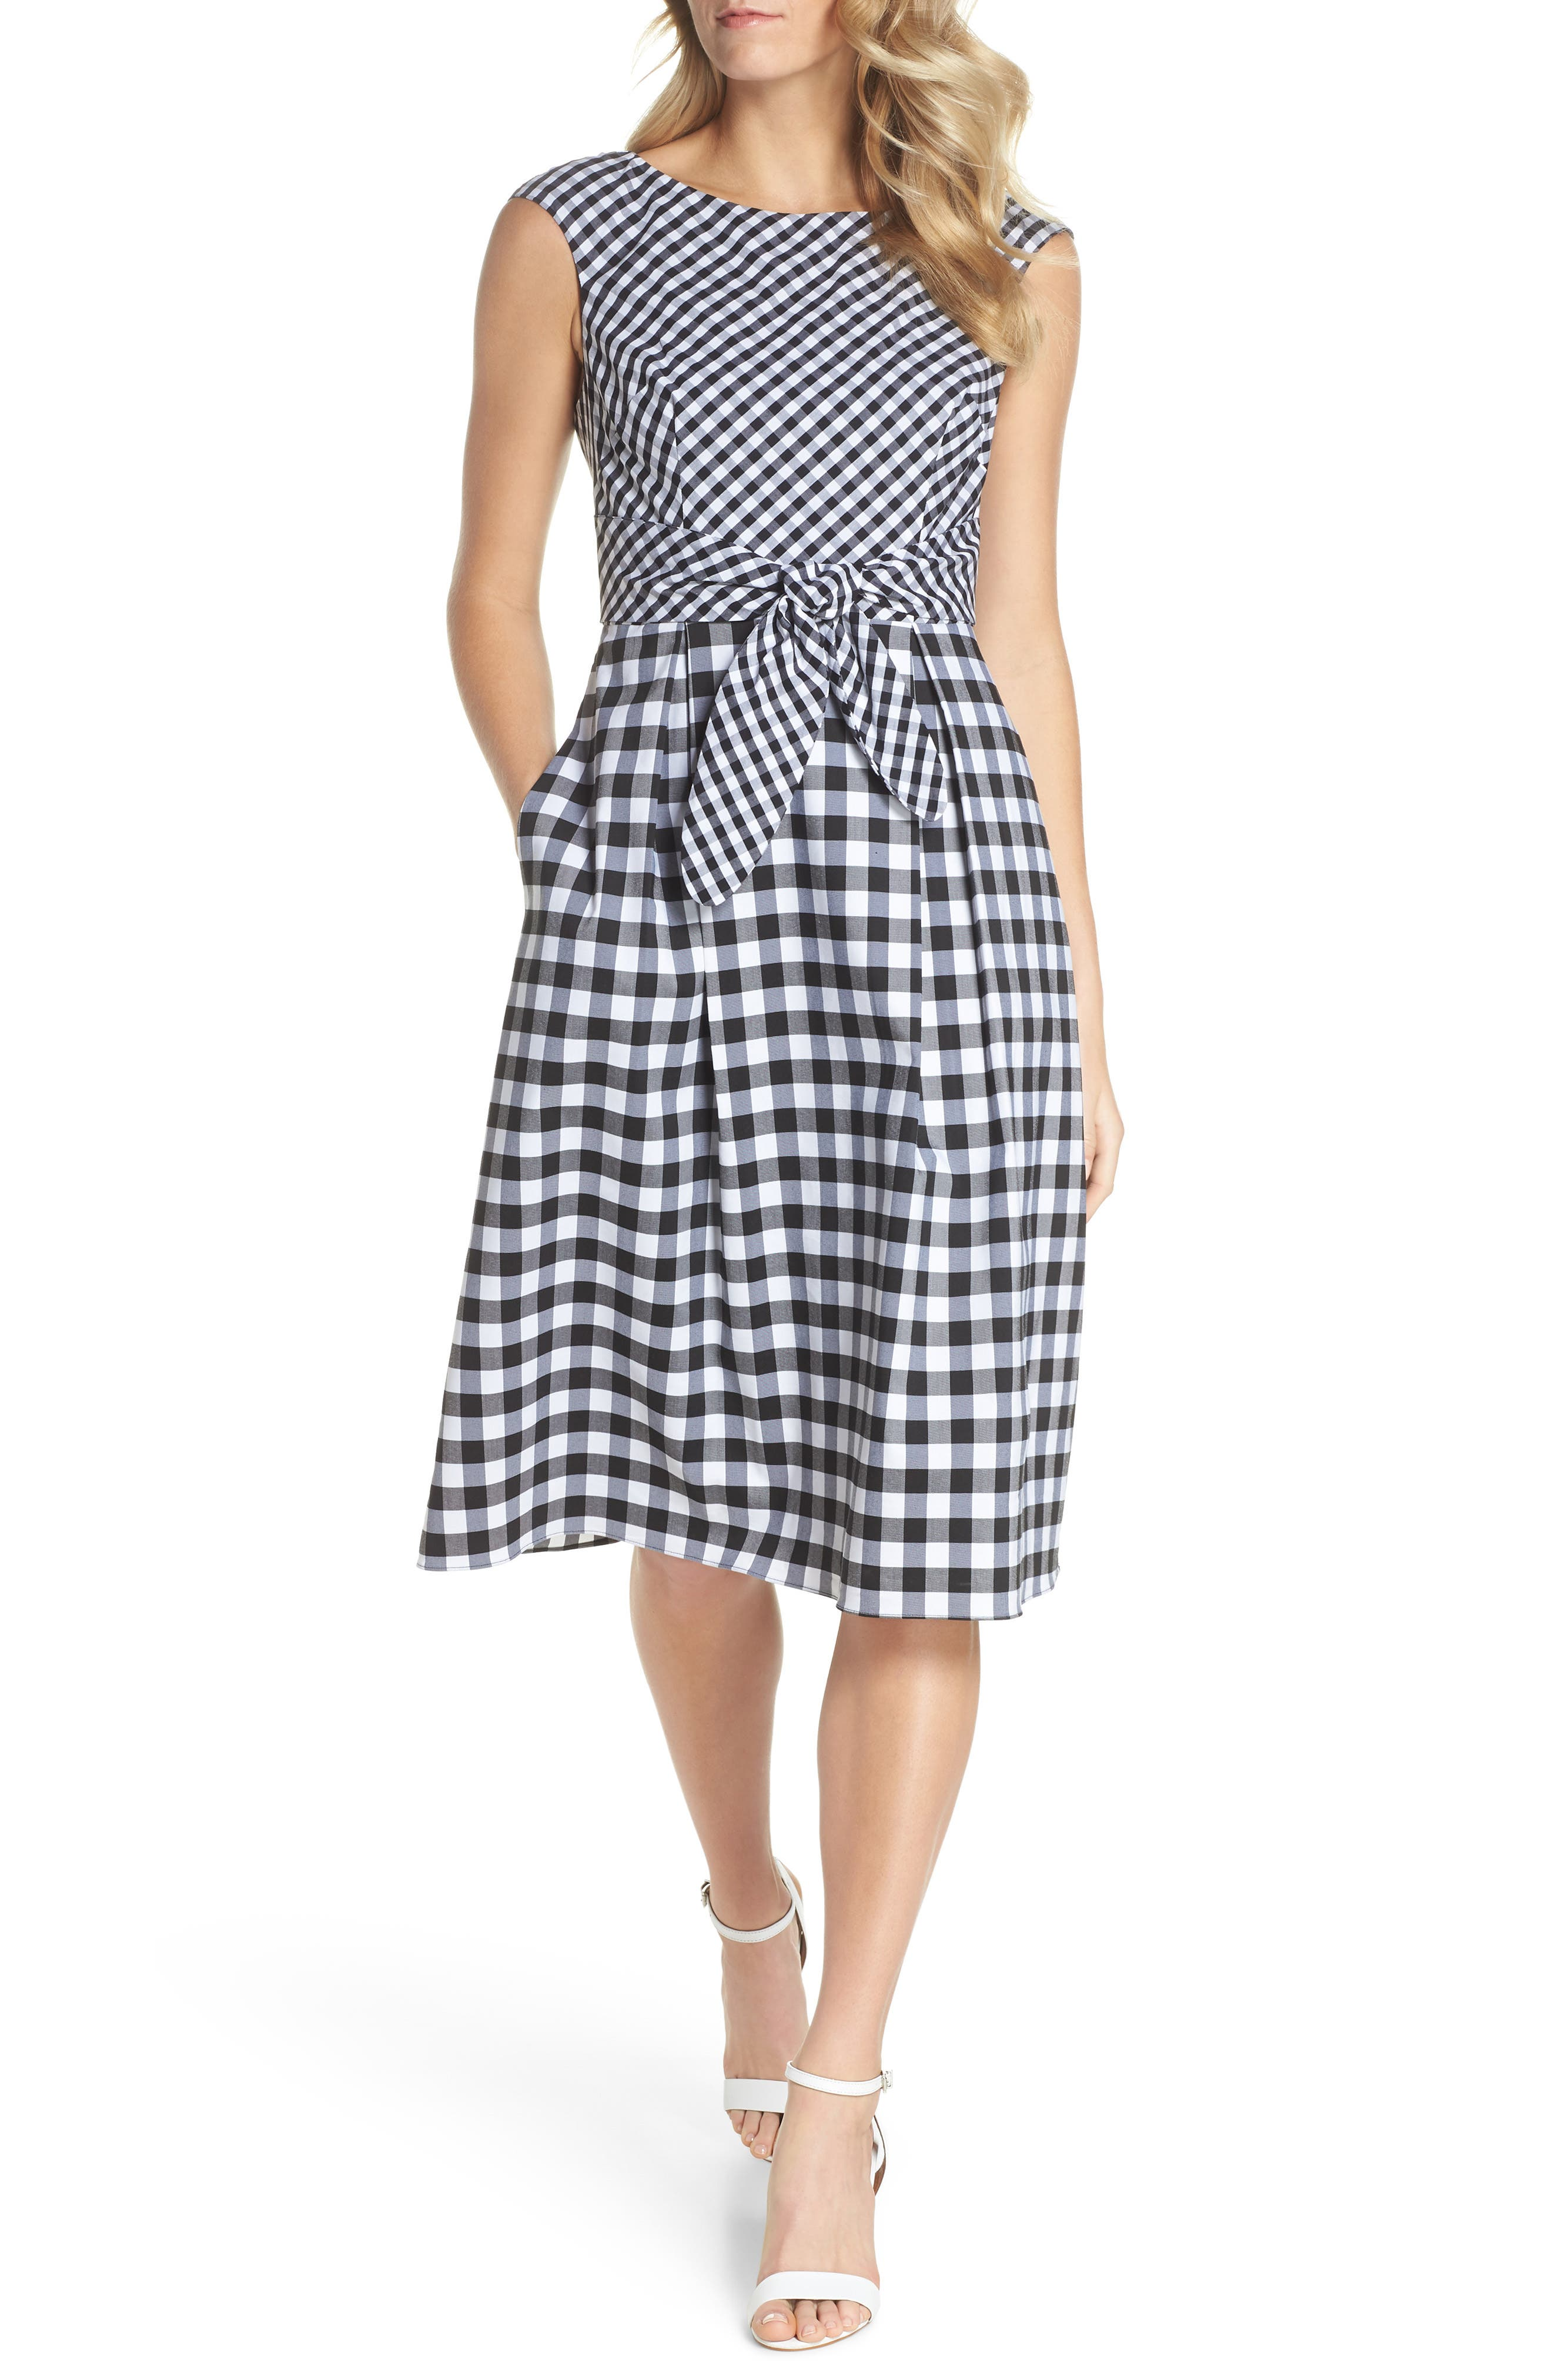 ADRIANNA PAPELL,                             Gingham Tie Front Midi Dress,                             Main thumbnail 1, color,                             002